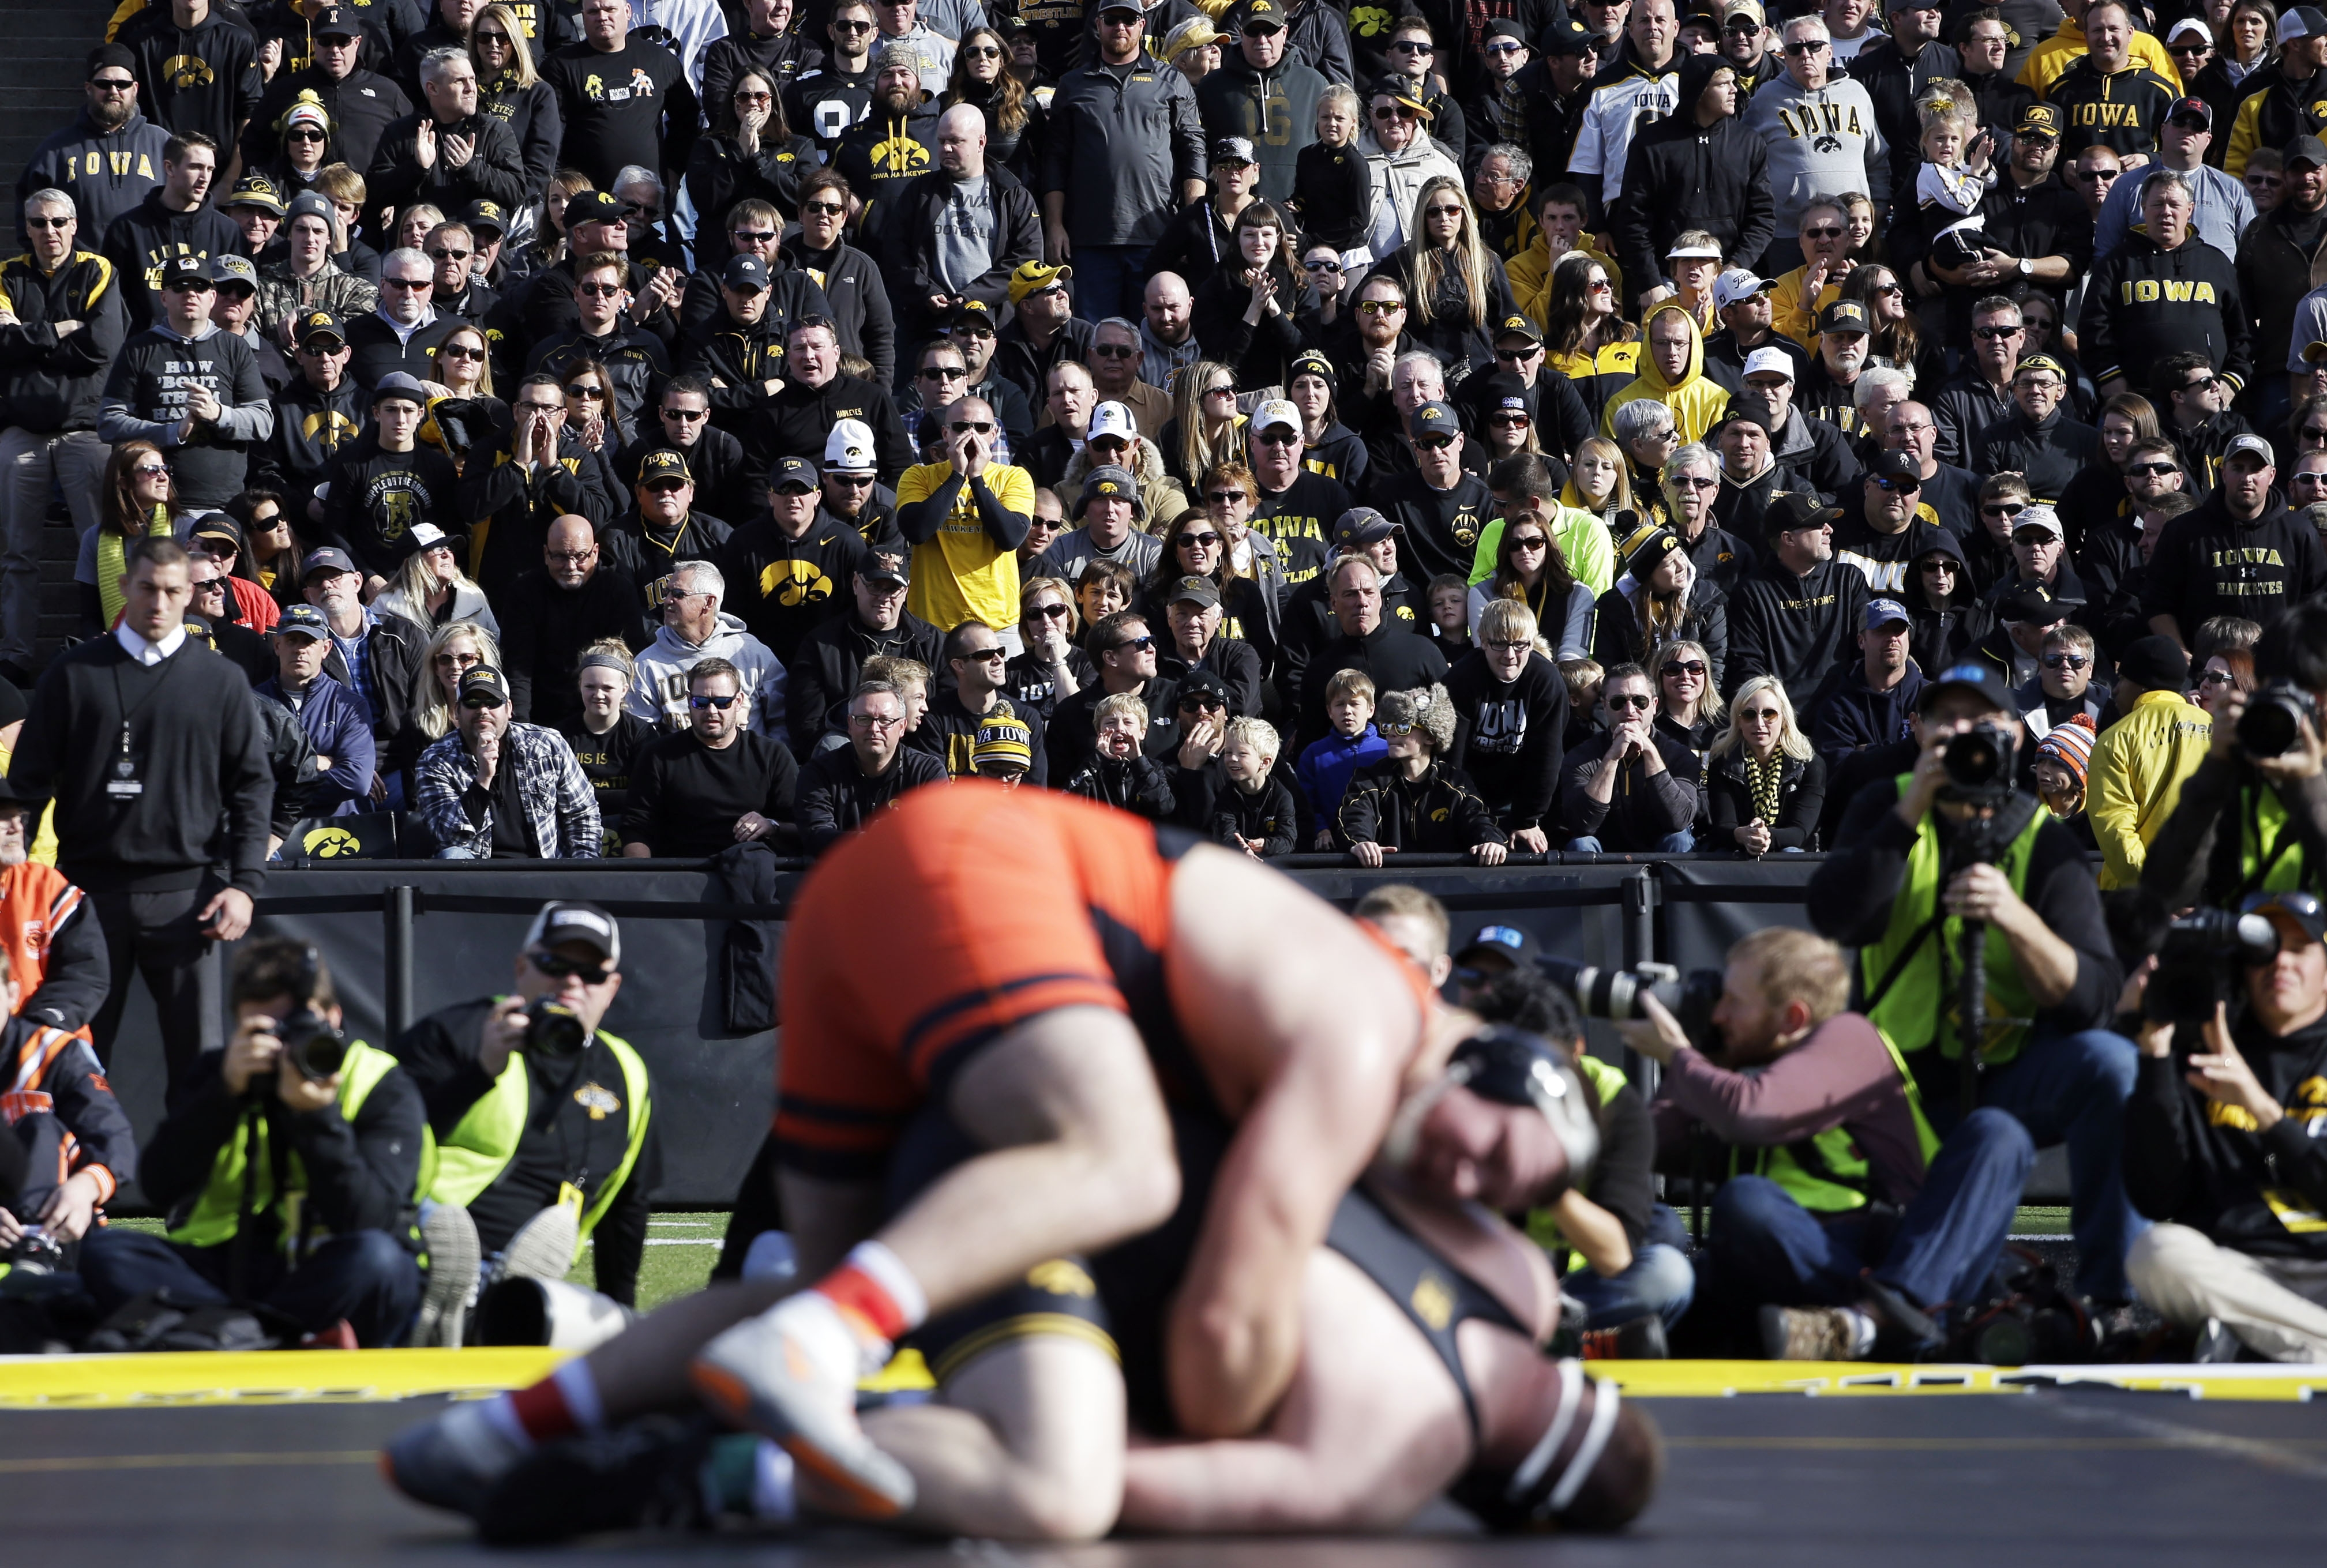 Fans watch Oklahoma State and Iowa grapple during an NCAA wrestling match on the football field at Kinnick Stadium,  Saturday, Nov. 14, 2015, in Iowa City, Iowa. (AP Photo/Nam Y. Huh)